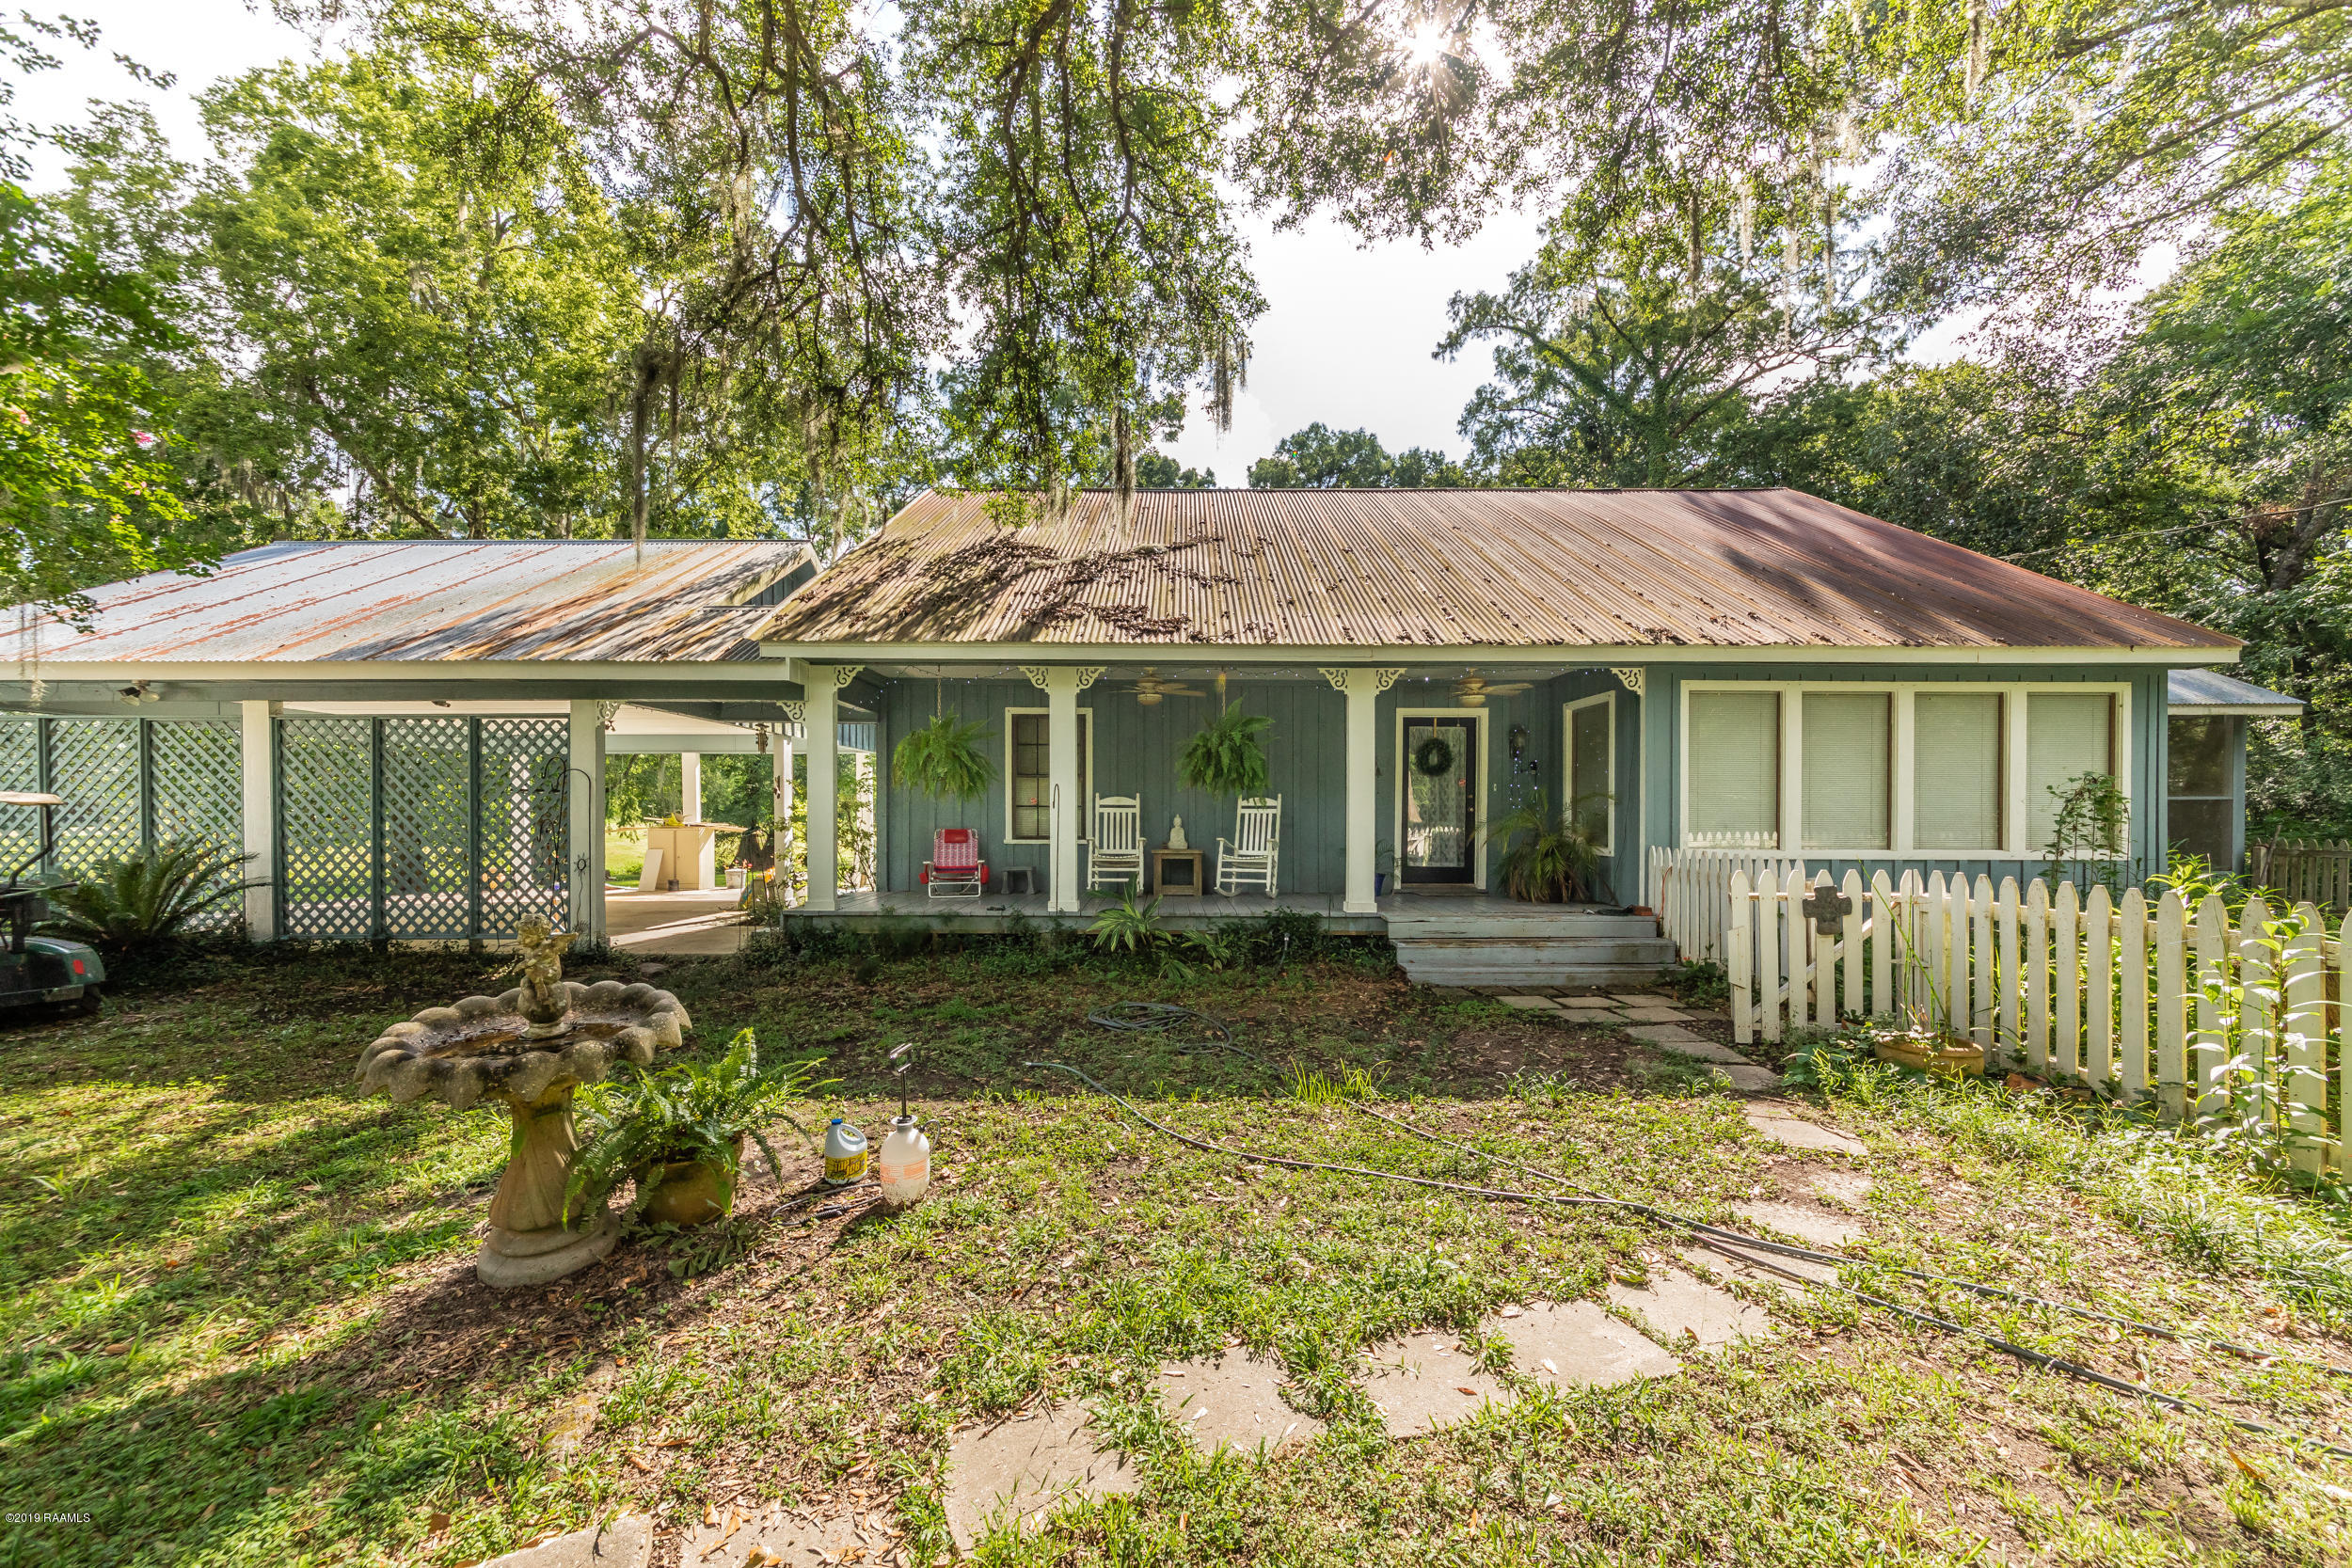 1079 Fontelieu Road, St. Martinville, LA 70582 Photo #8